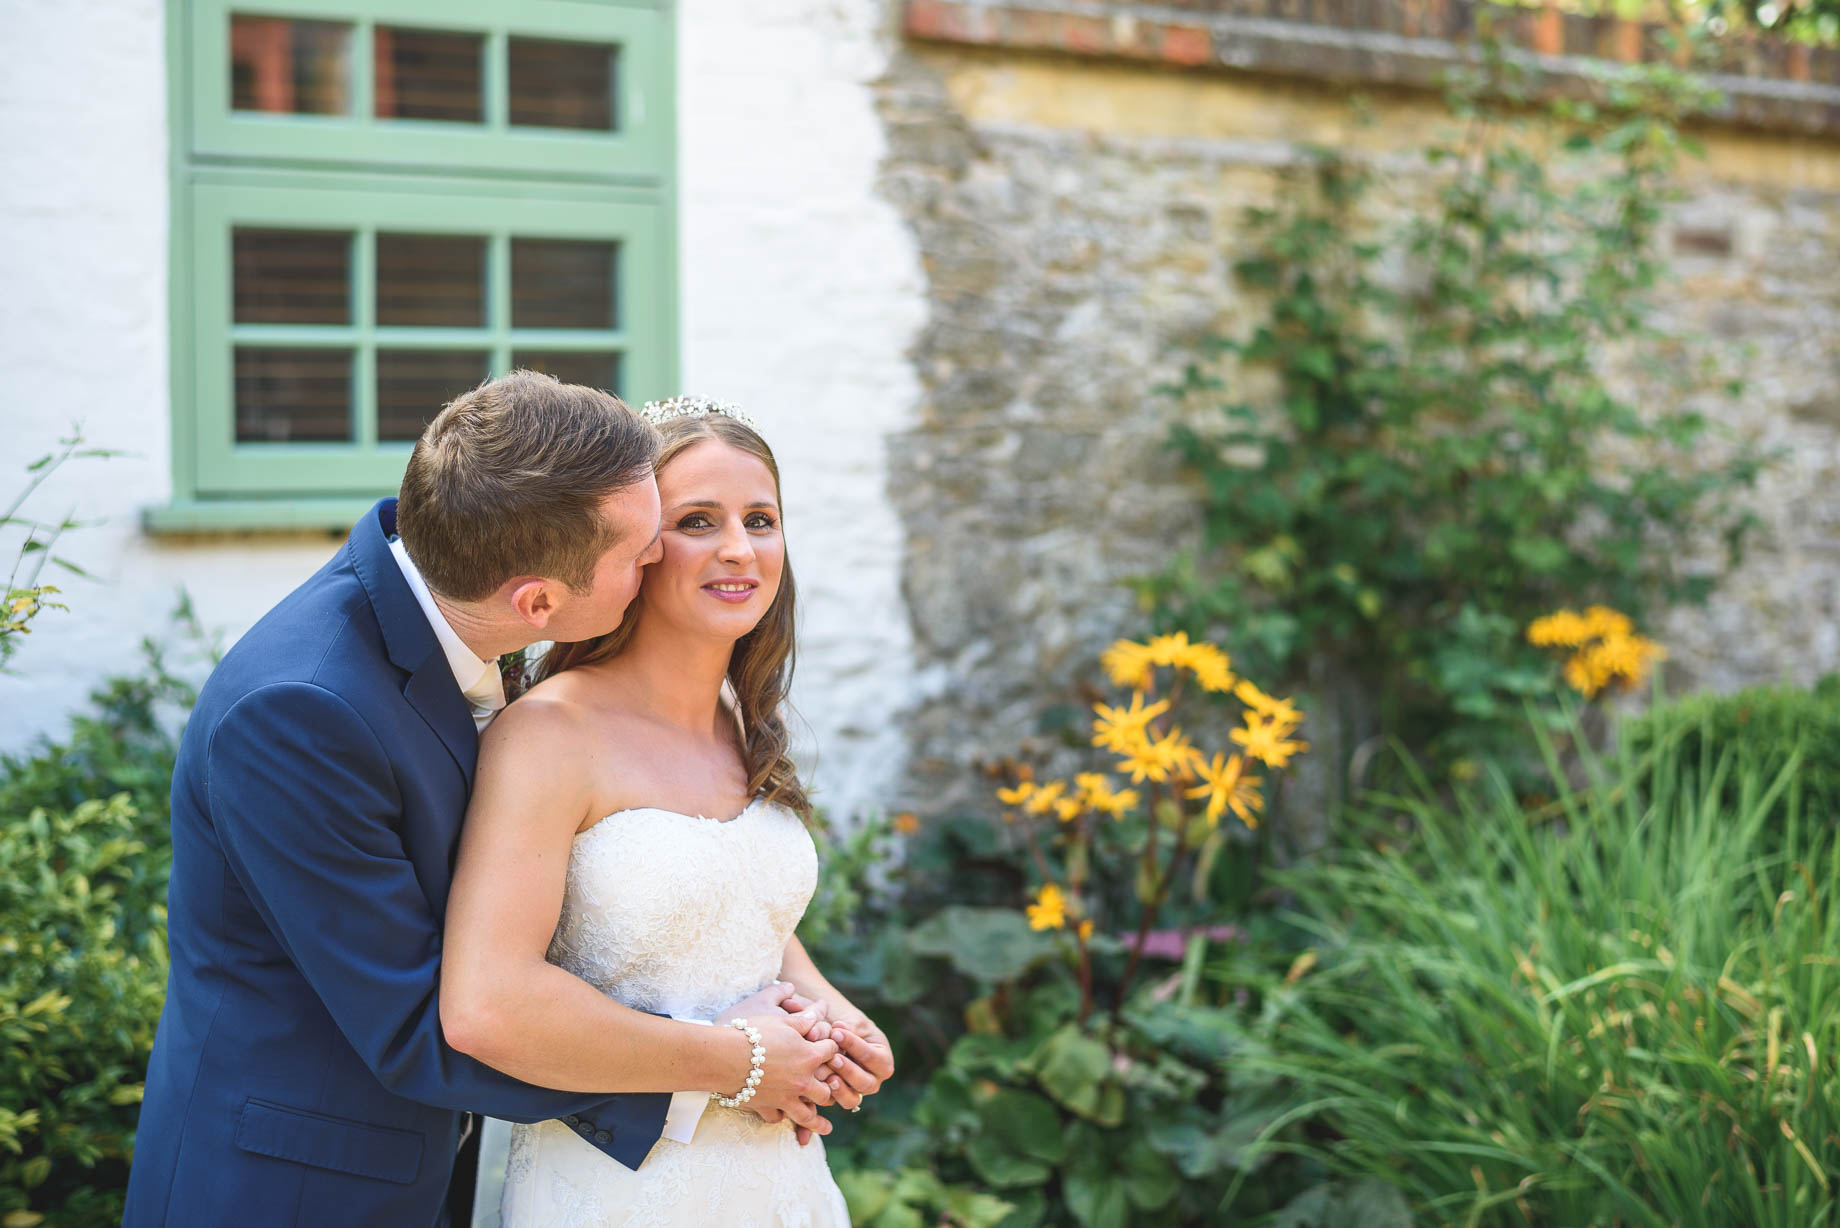 Gate Street Barn wedding photography - Guy Collier - Claire and Andy (66 of 192)